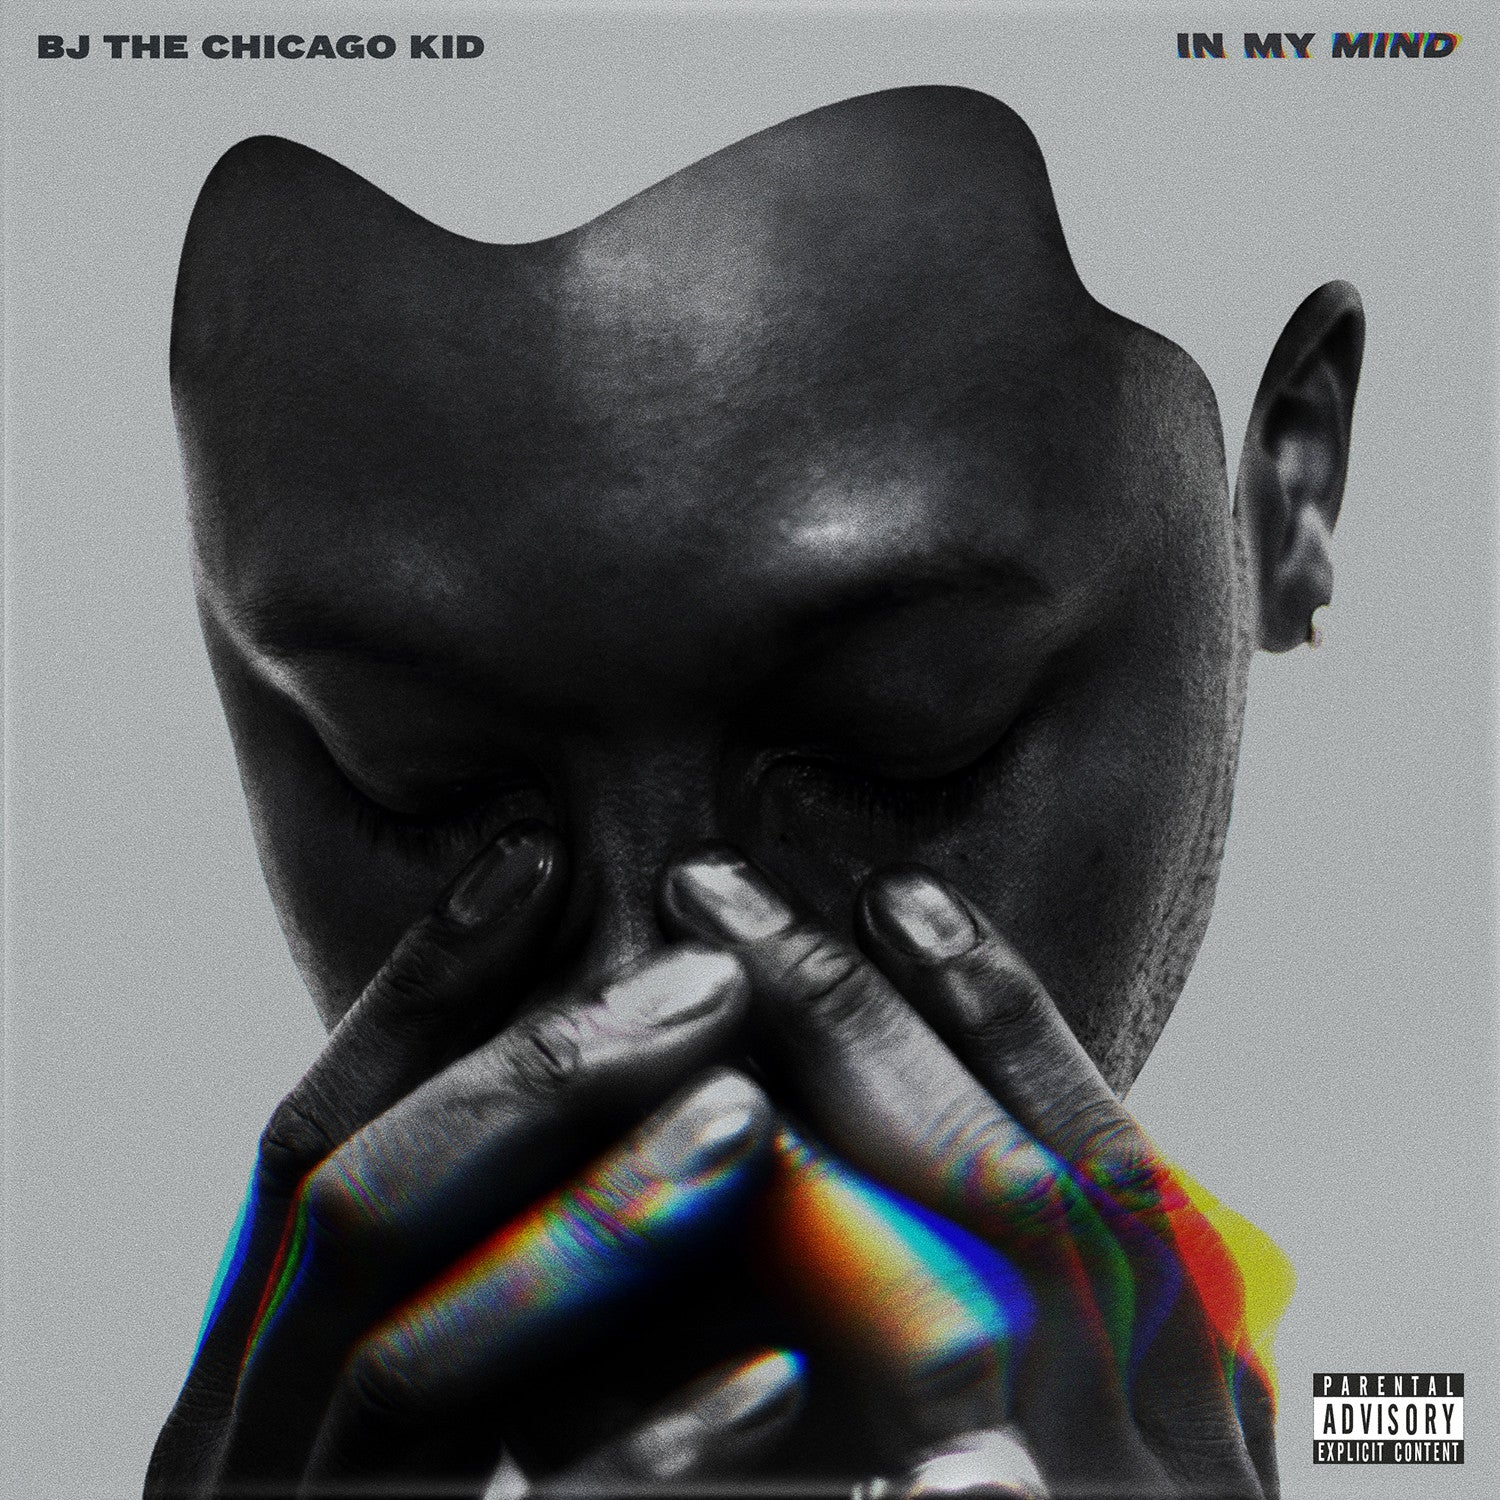 BJ The Chicago Kid - In My Mind